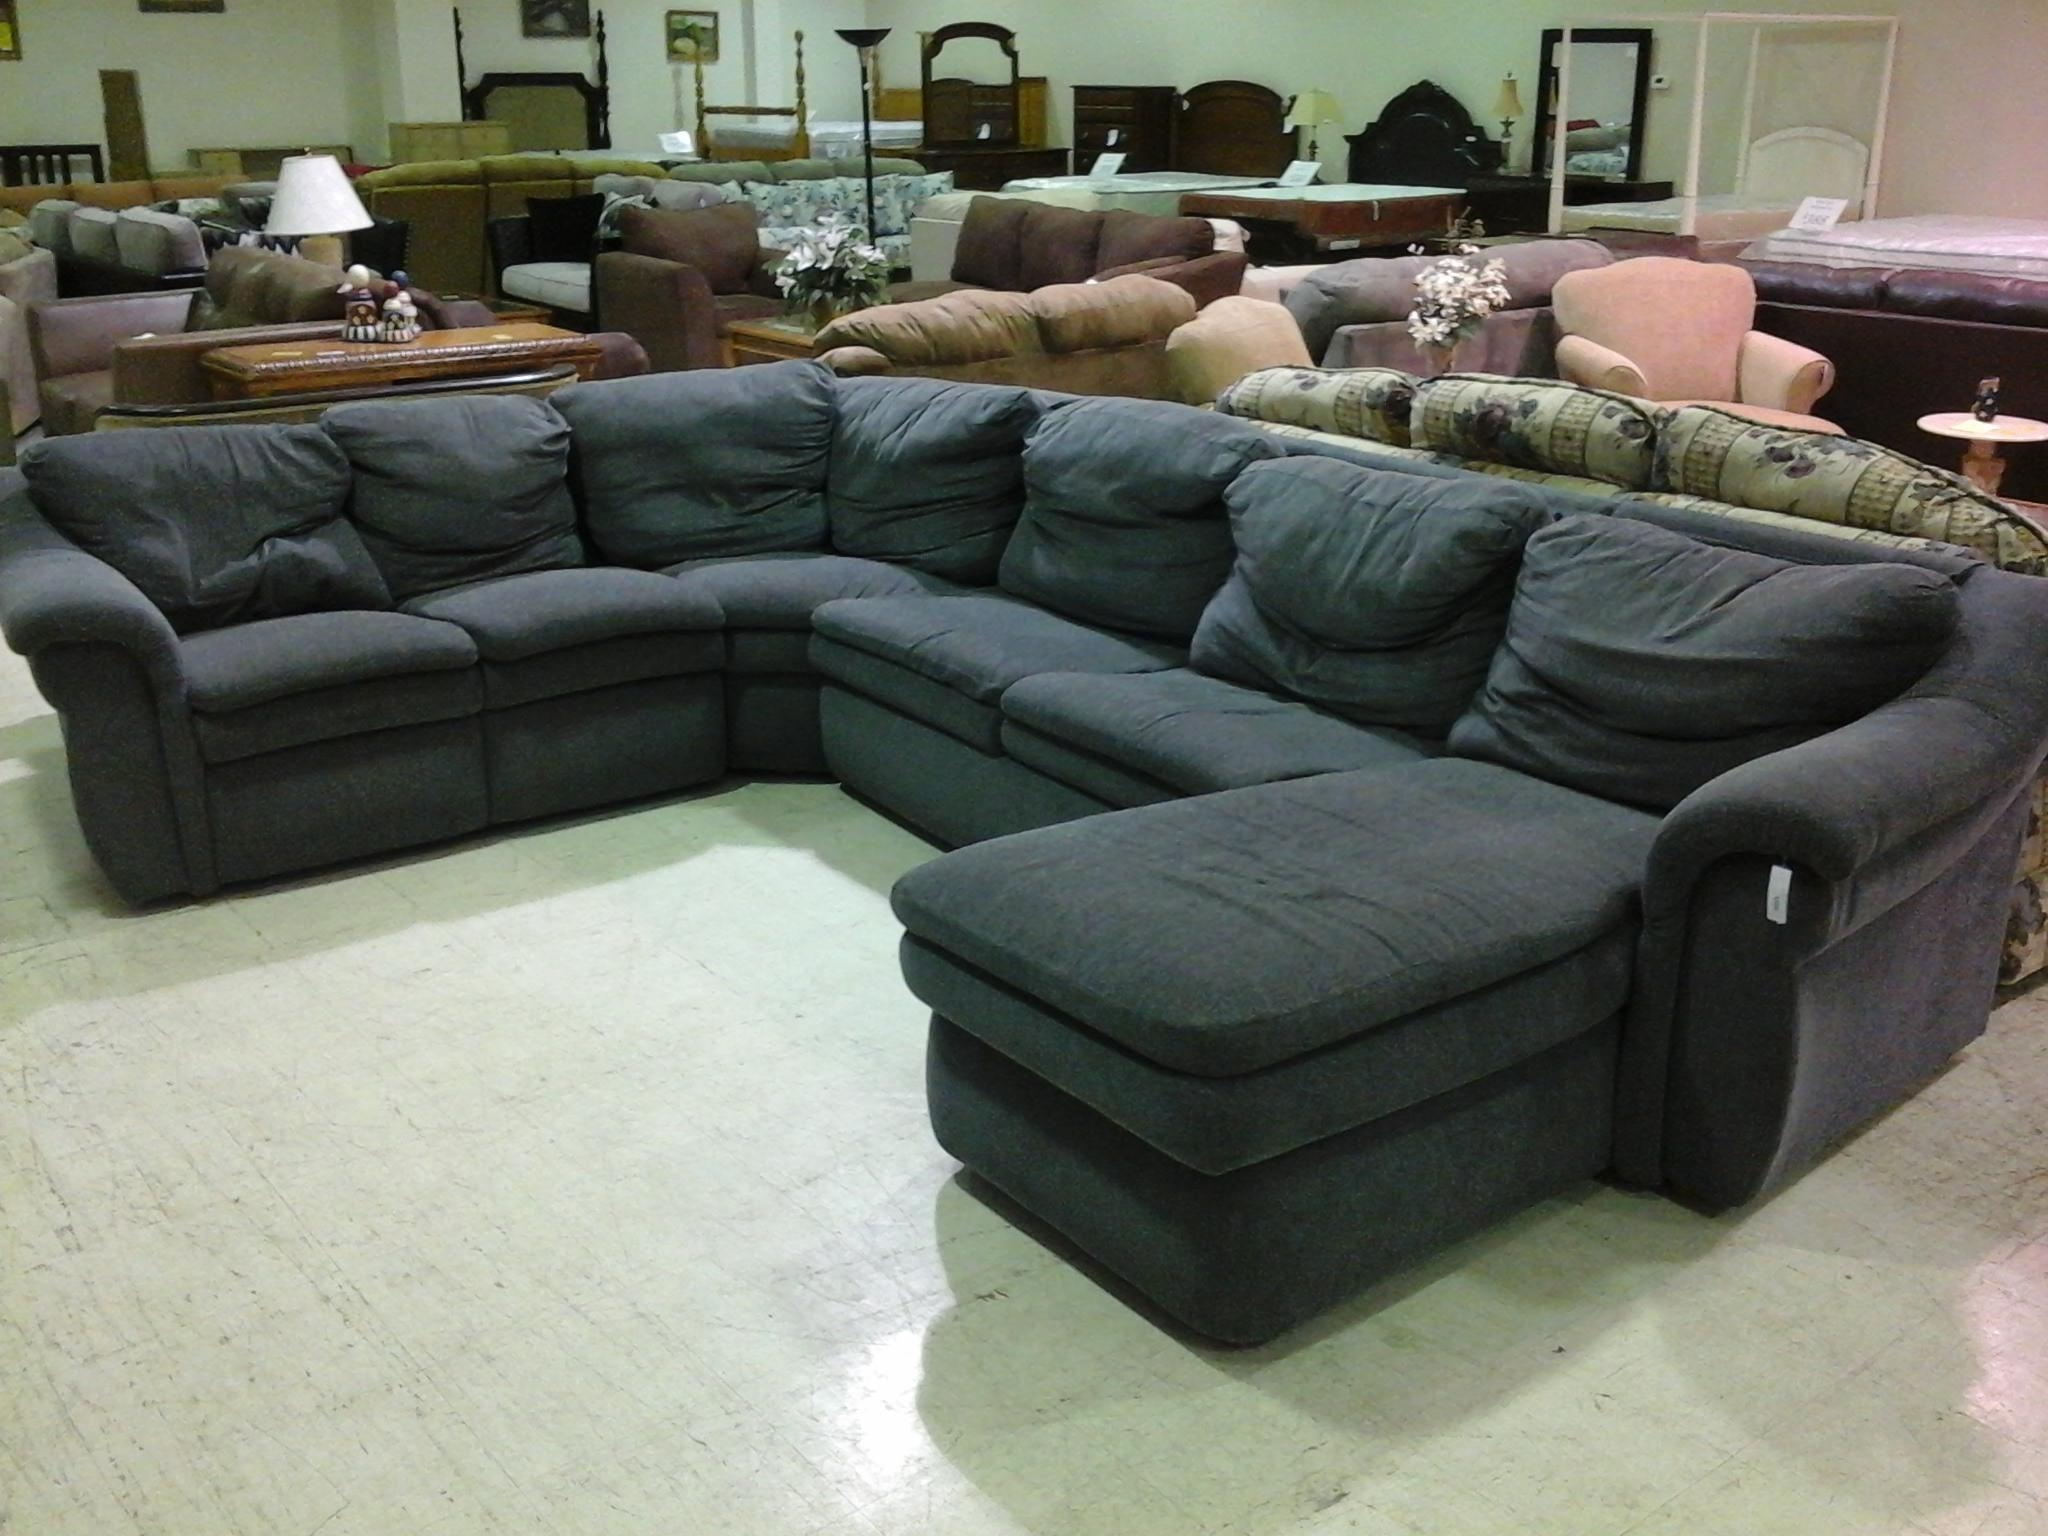 Furniture: Sofa Beds With Chaise And Sectional With Sleeper For Sectional Sofas With Sleeper And Chaise (View 12 of 21)